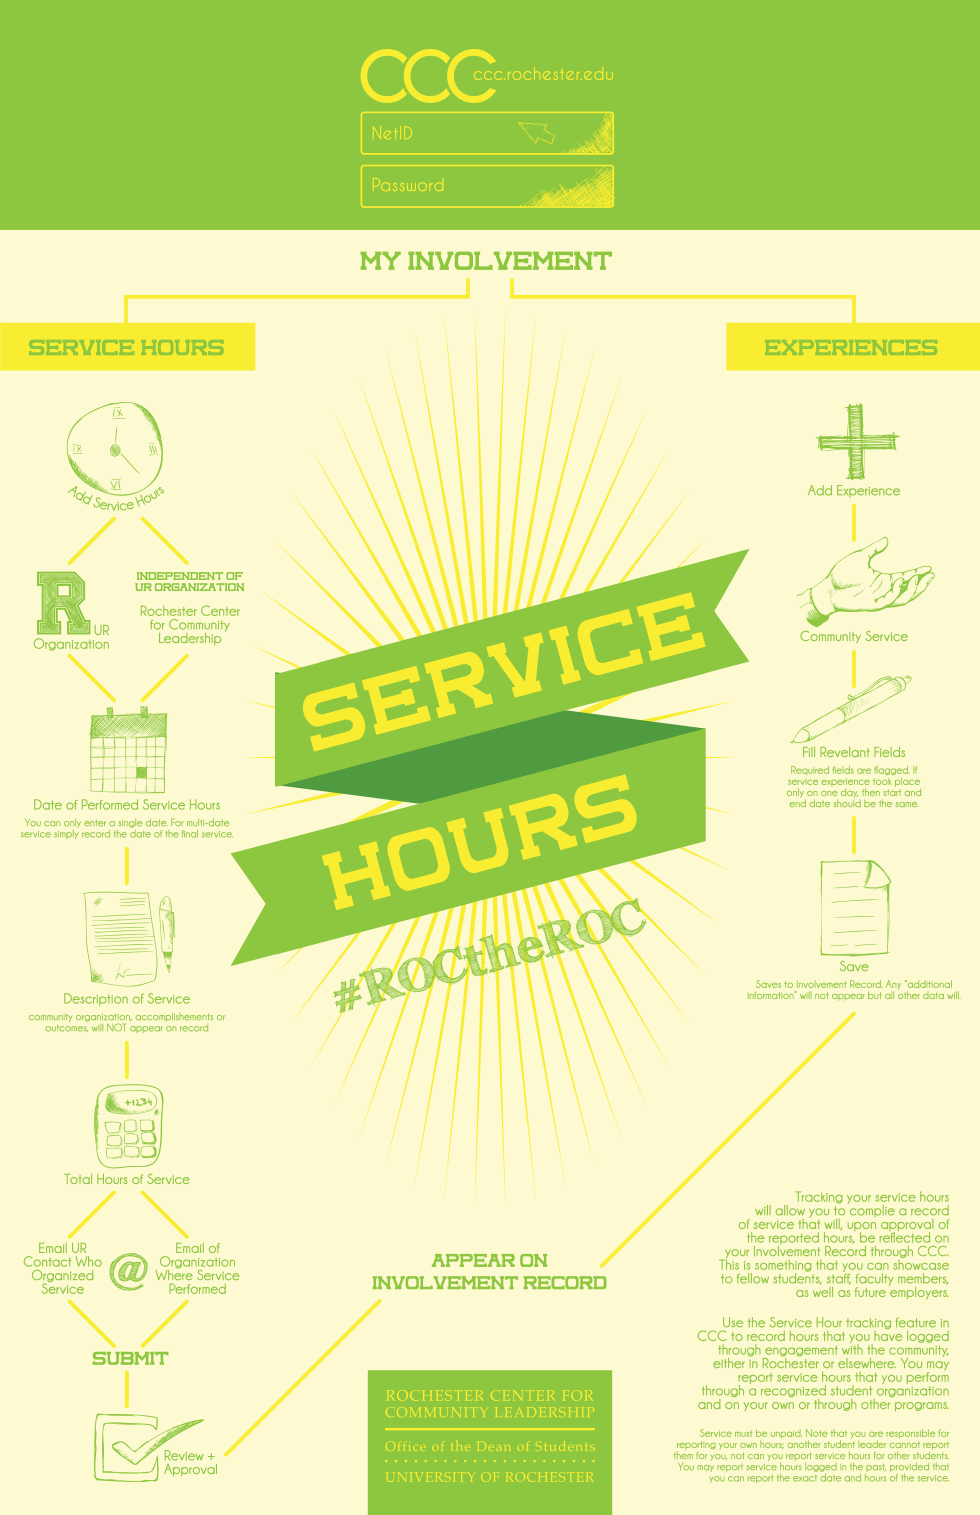 Service Hour Submission Process